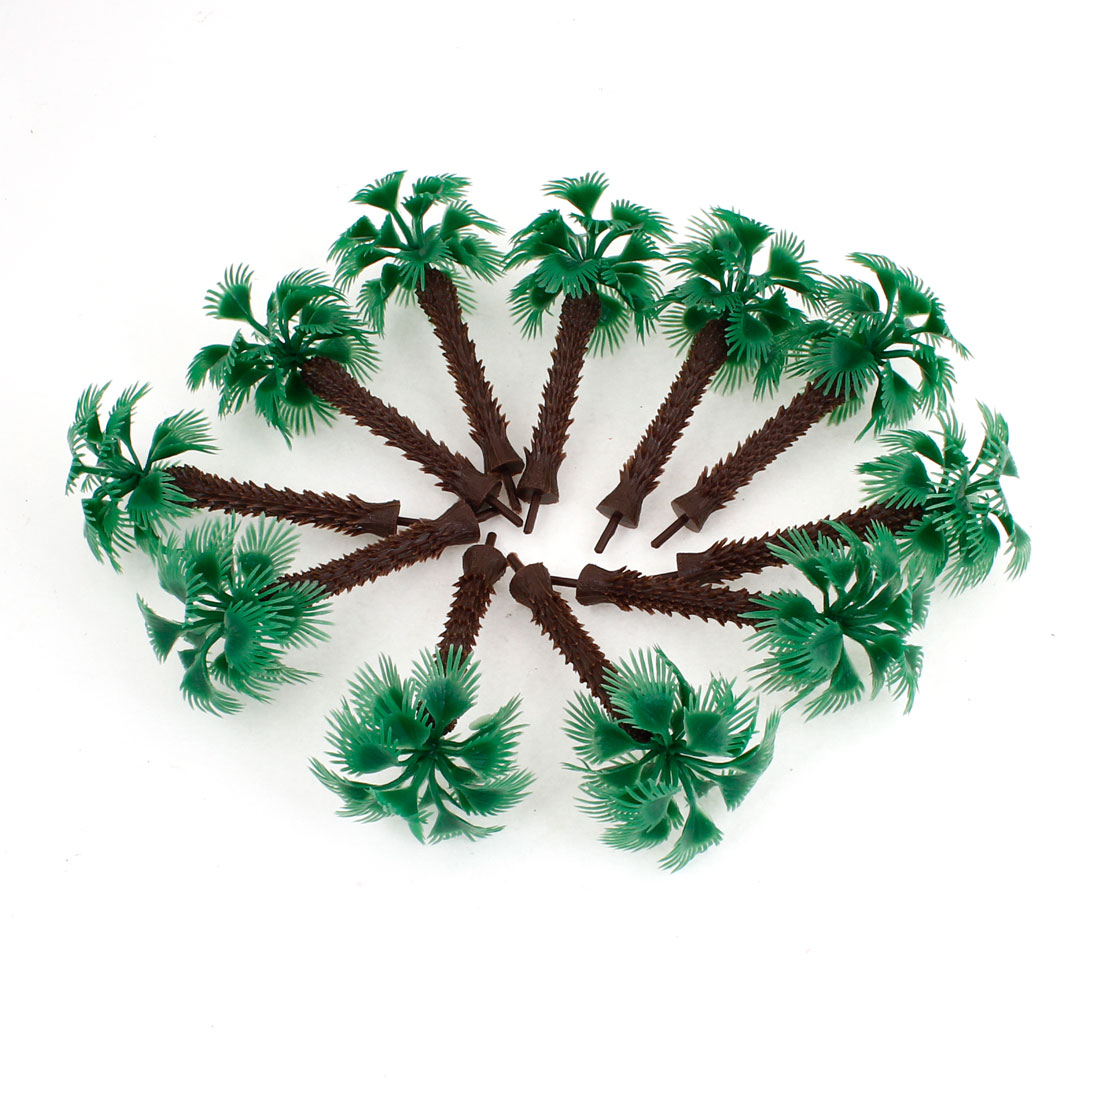 9cm High Scale 1:100 Green Plastic Short Palm Model Tree 10 Pcs